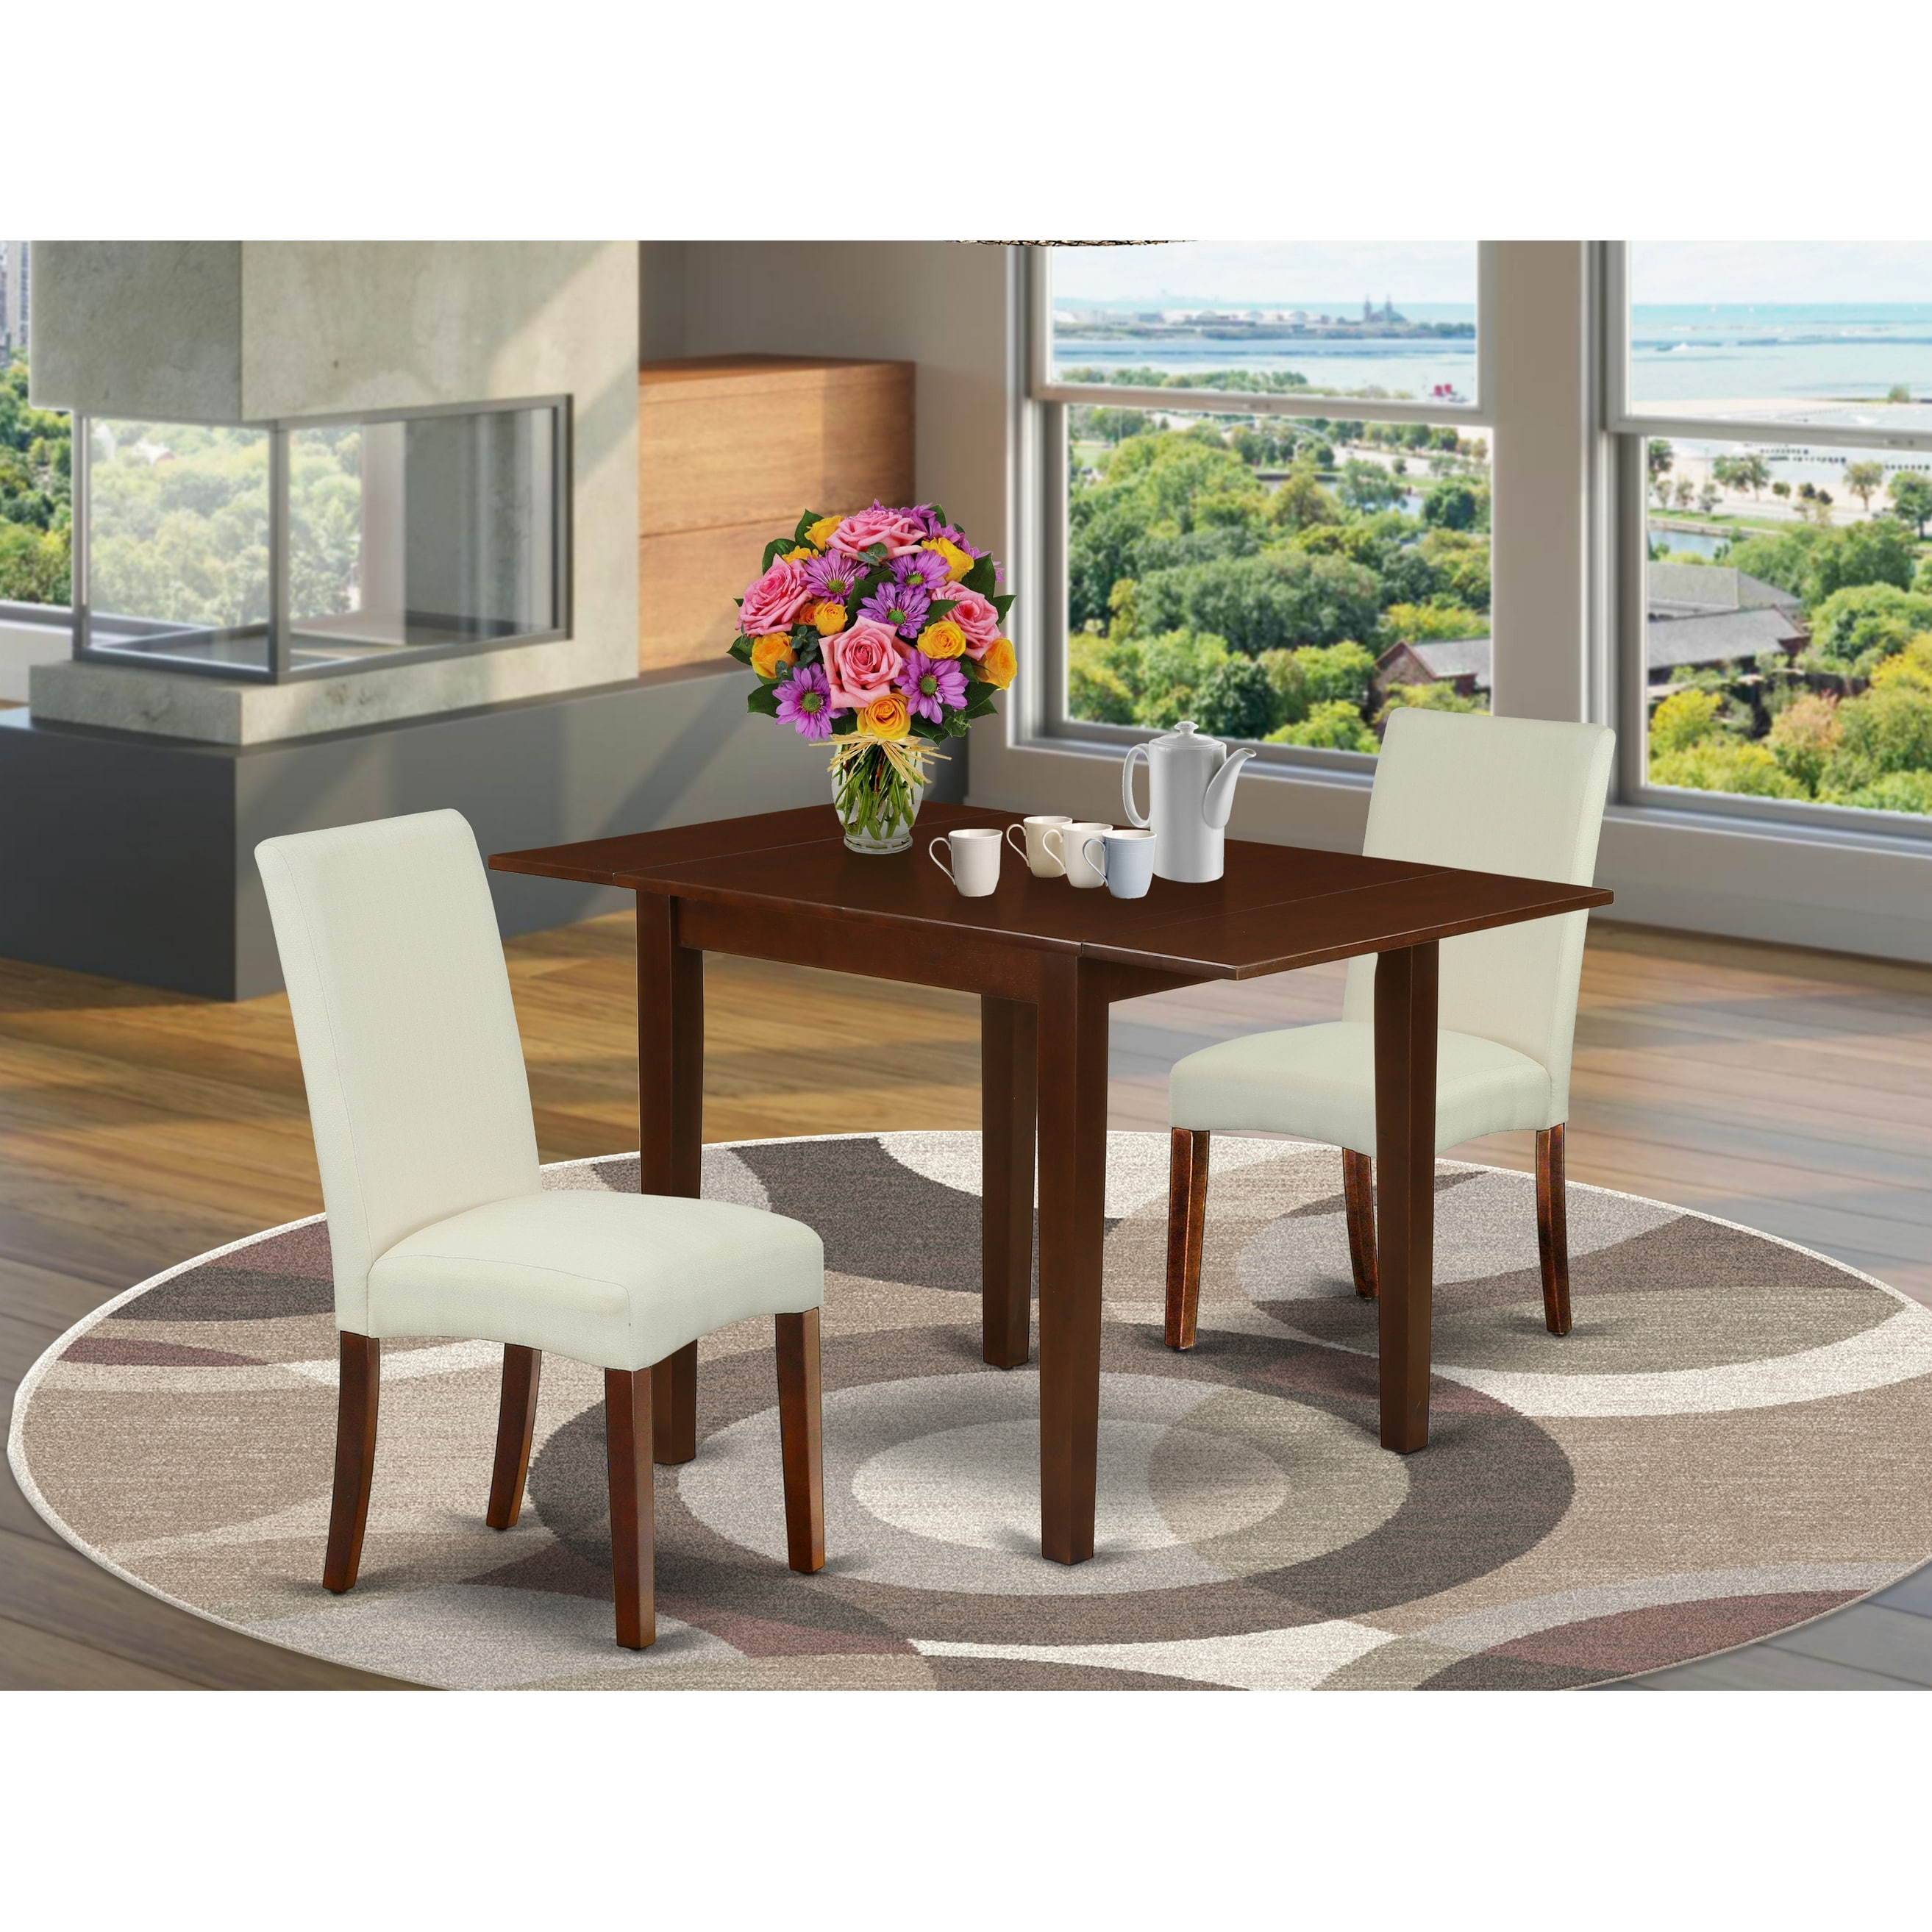 Rectangle Dinner Table And Solid Wood Parson Dining Chairs With Cream Color Linen Fabric Seat Number Of Chairs Option Overstock 32448458